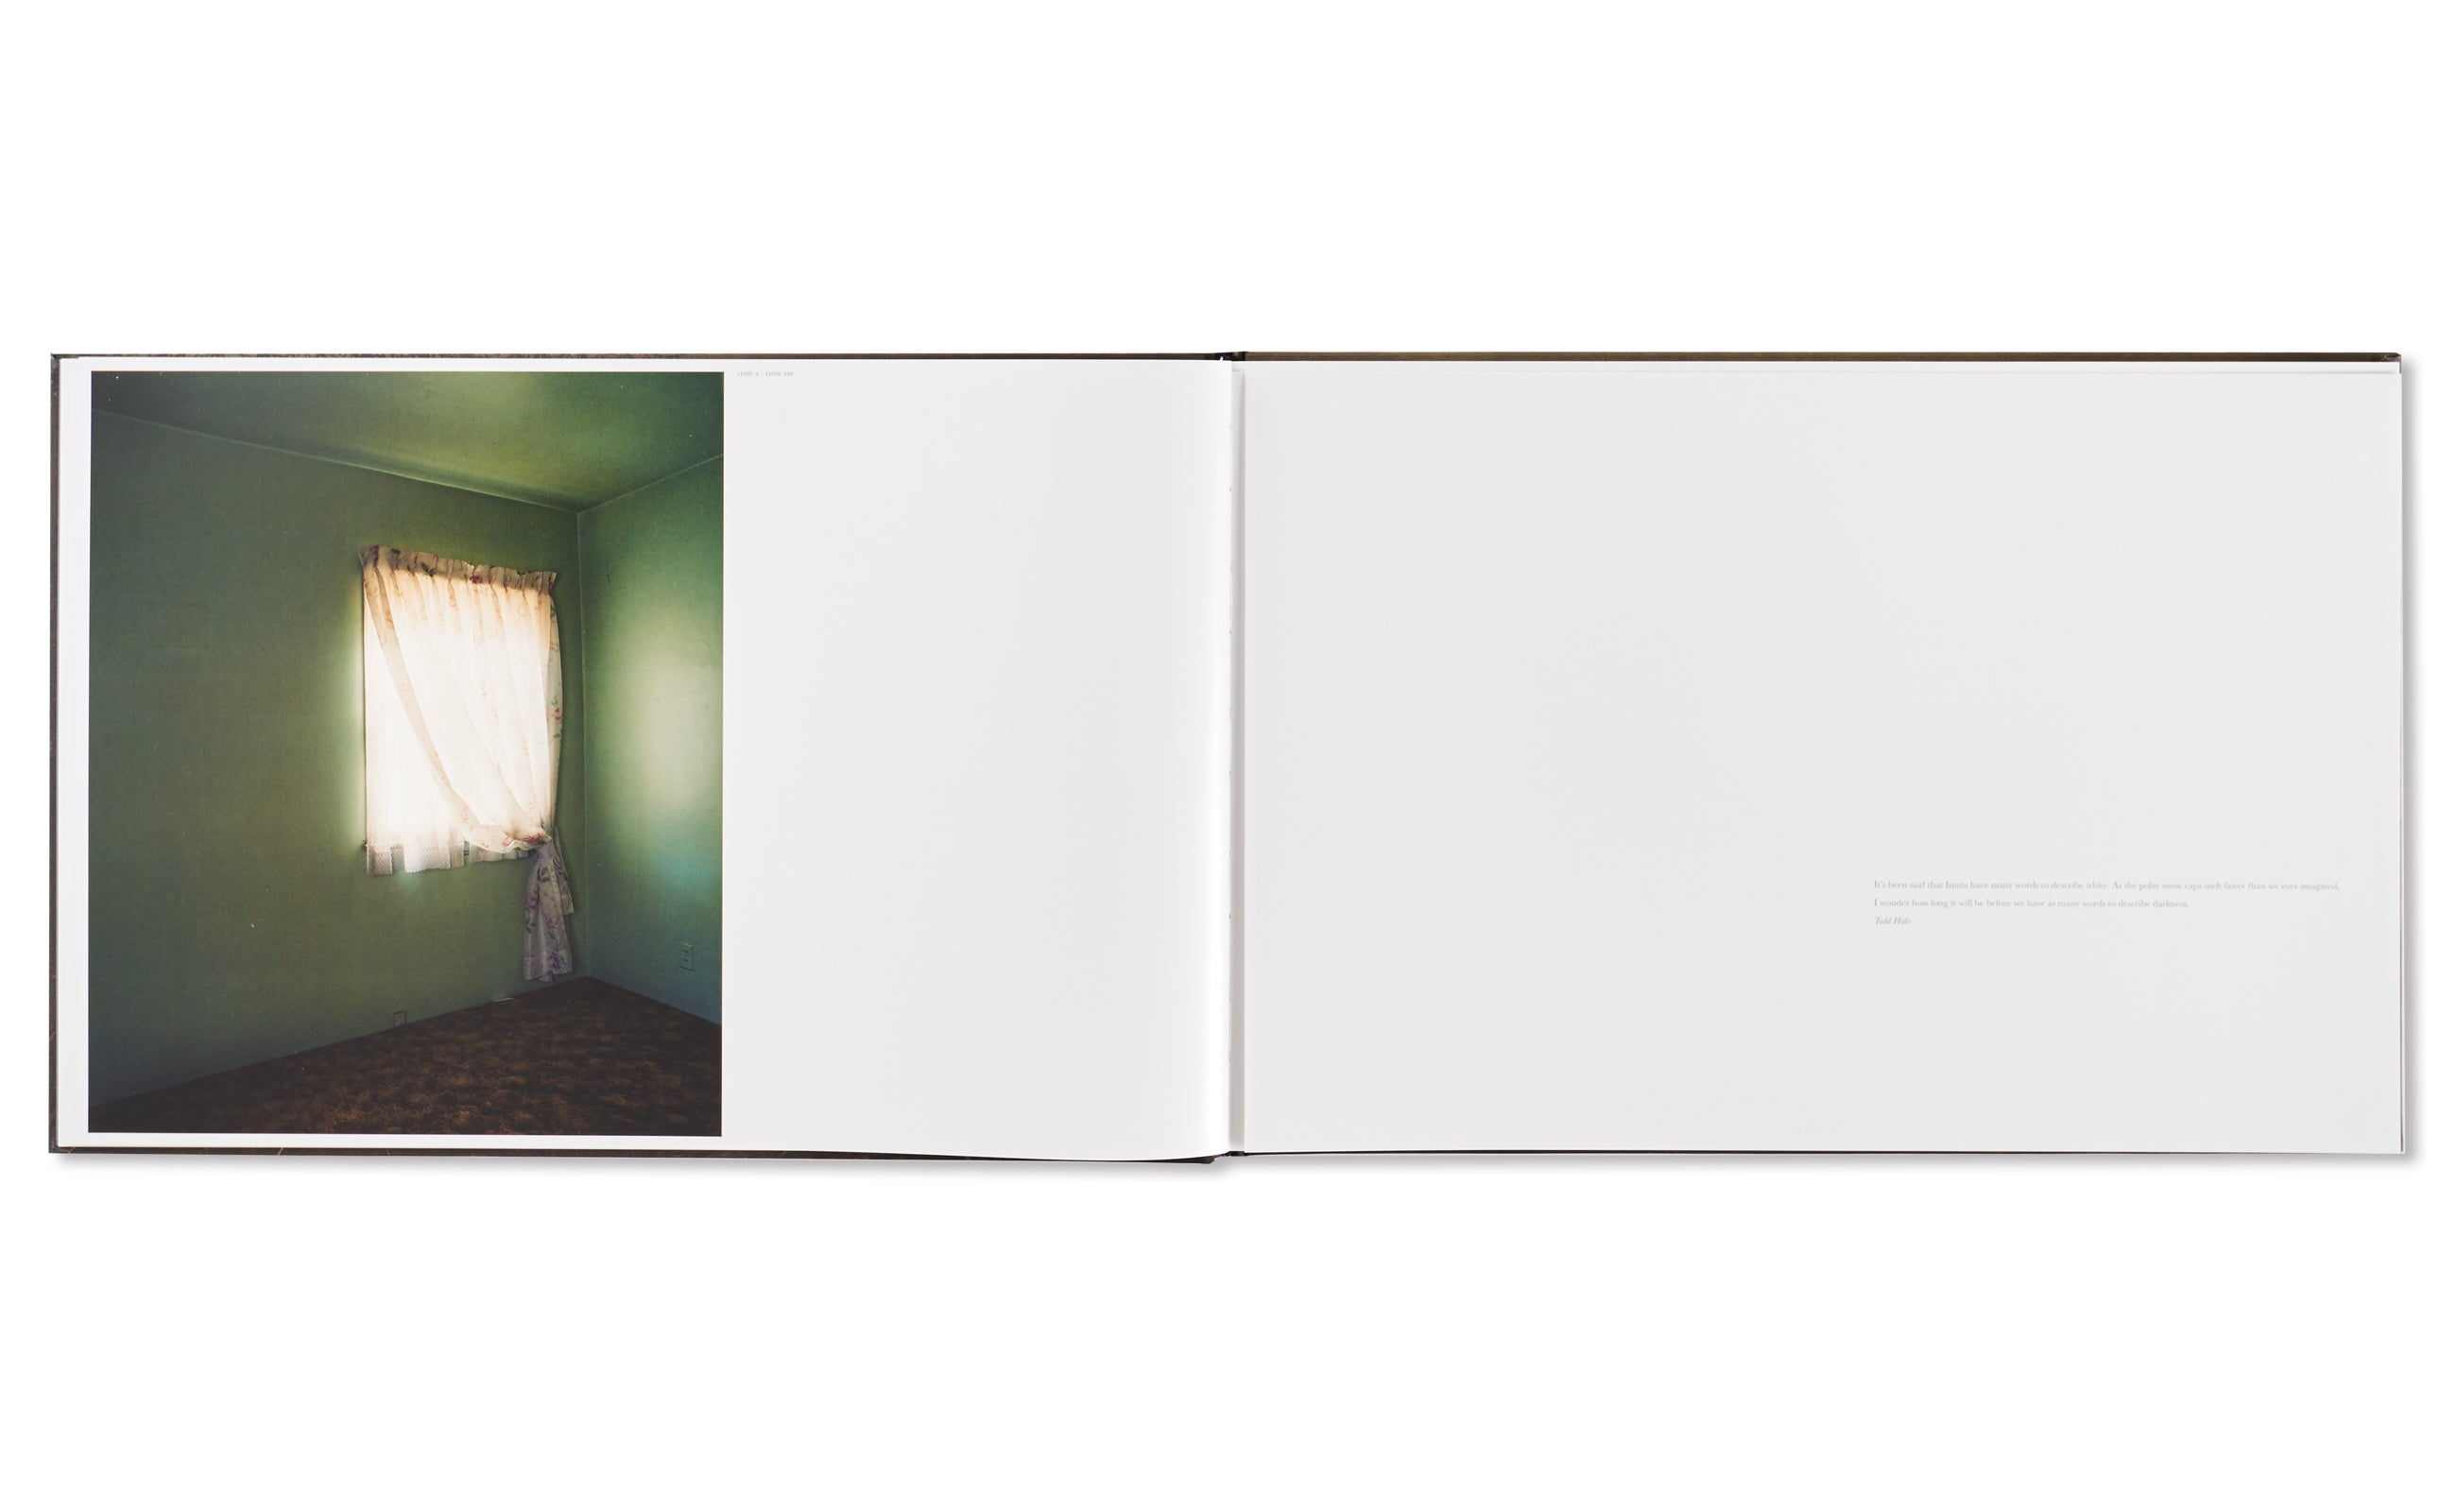 BRIGHT BLACK WORLD by Todd Hido [SIGNED]